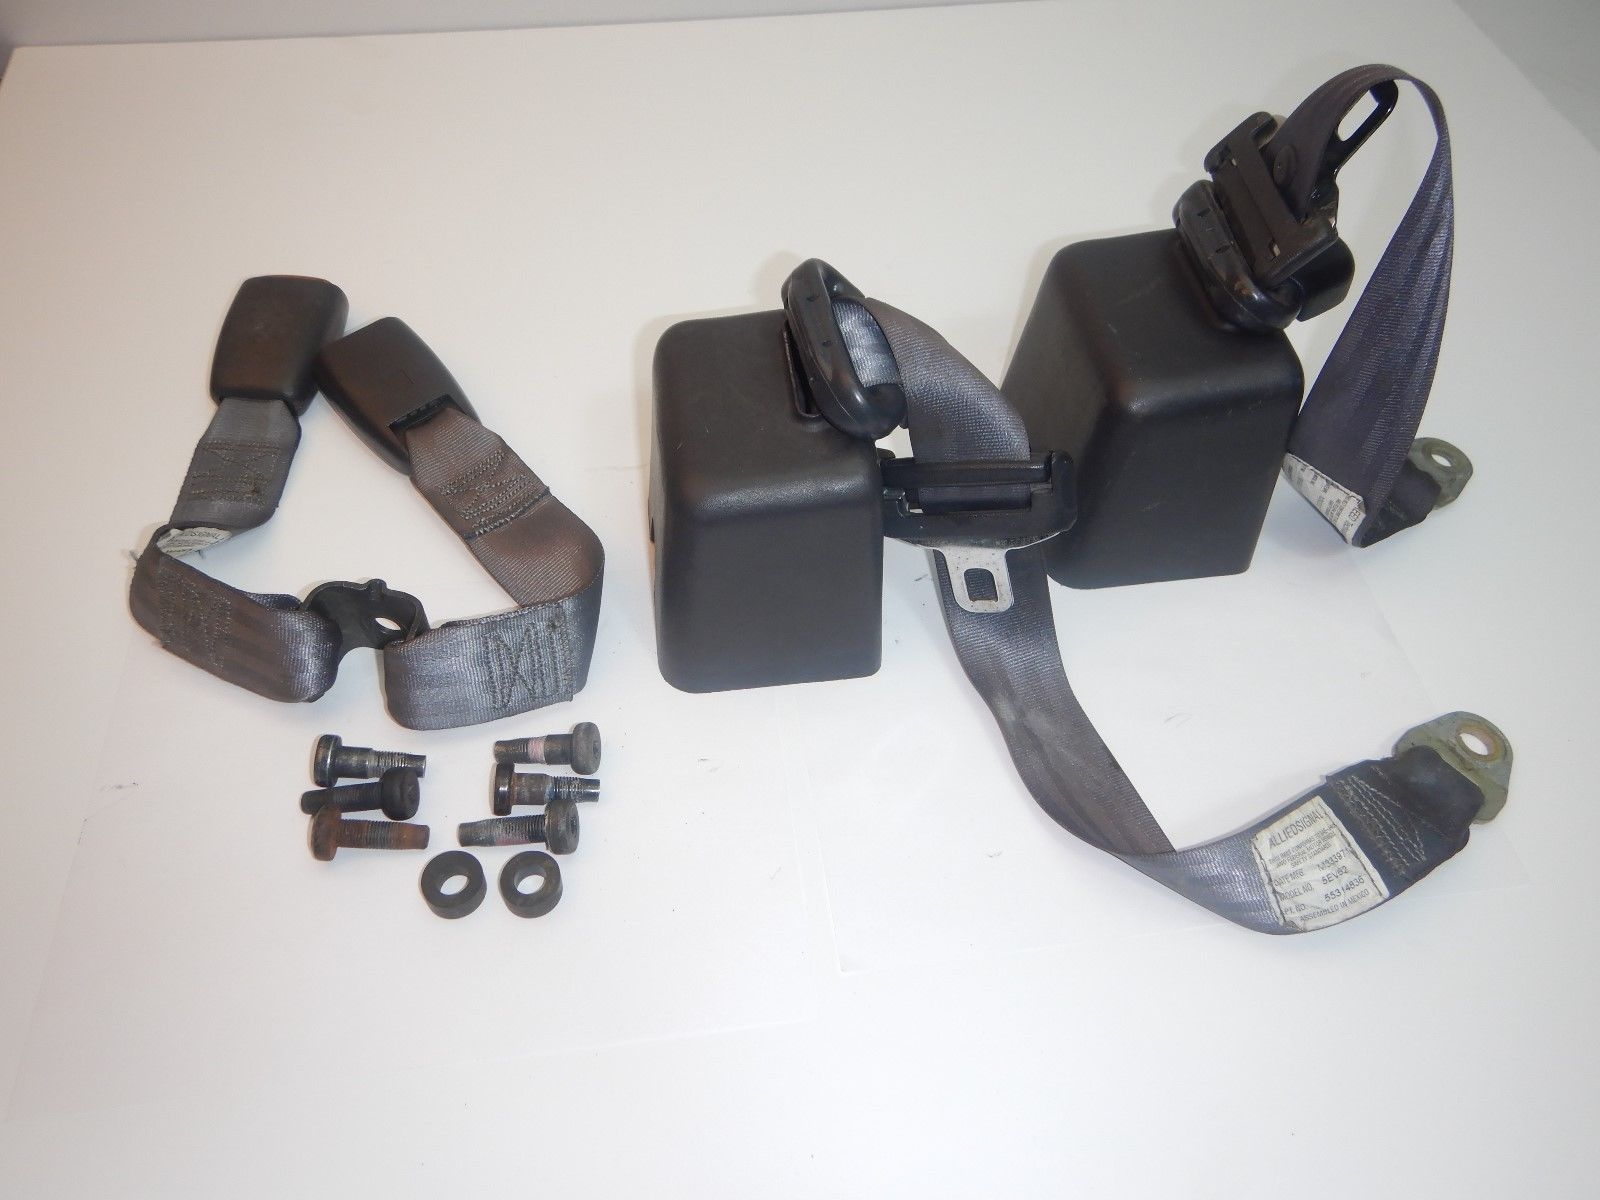 97-02 Wrangler TJ OEM Complete Rear Seat Belts Assembly Set